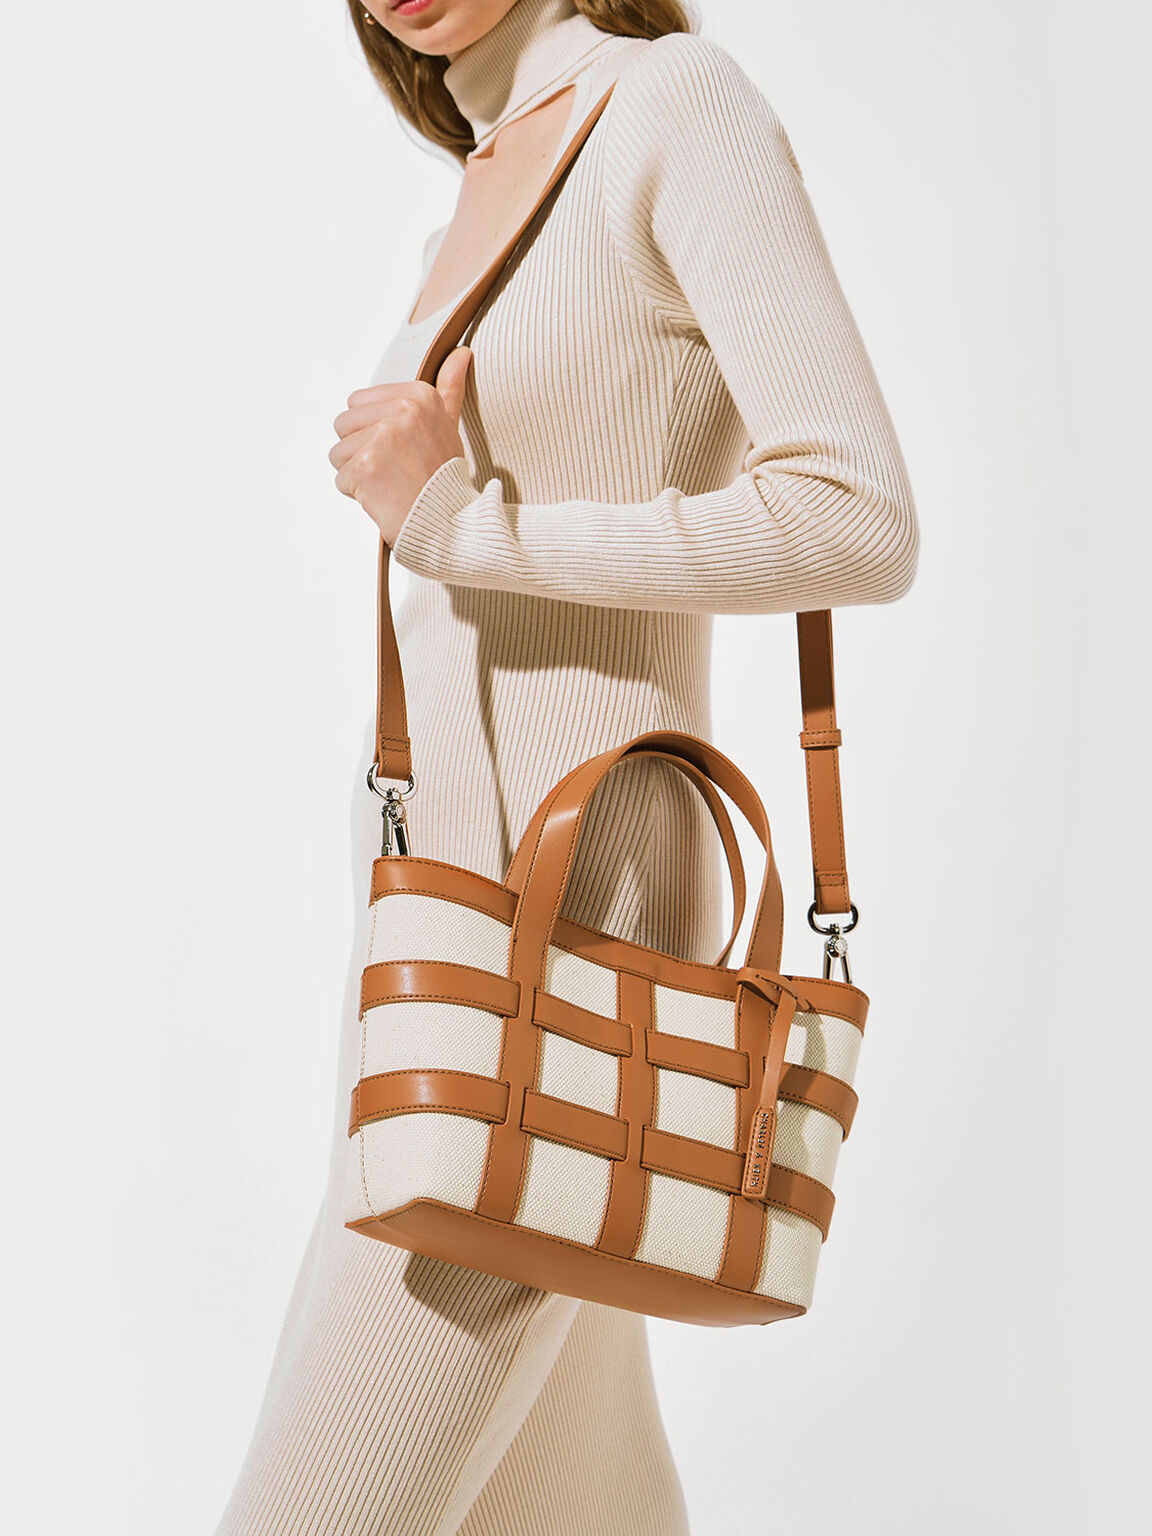 Caged Canvas Tote Bag, Beige, hi-res